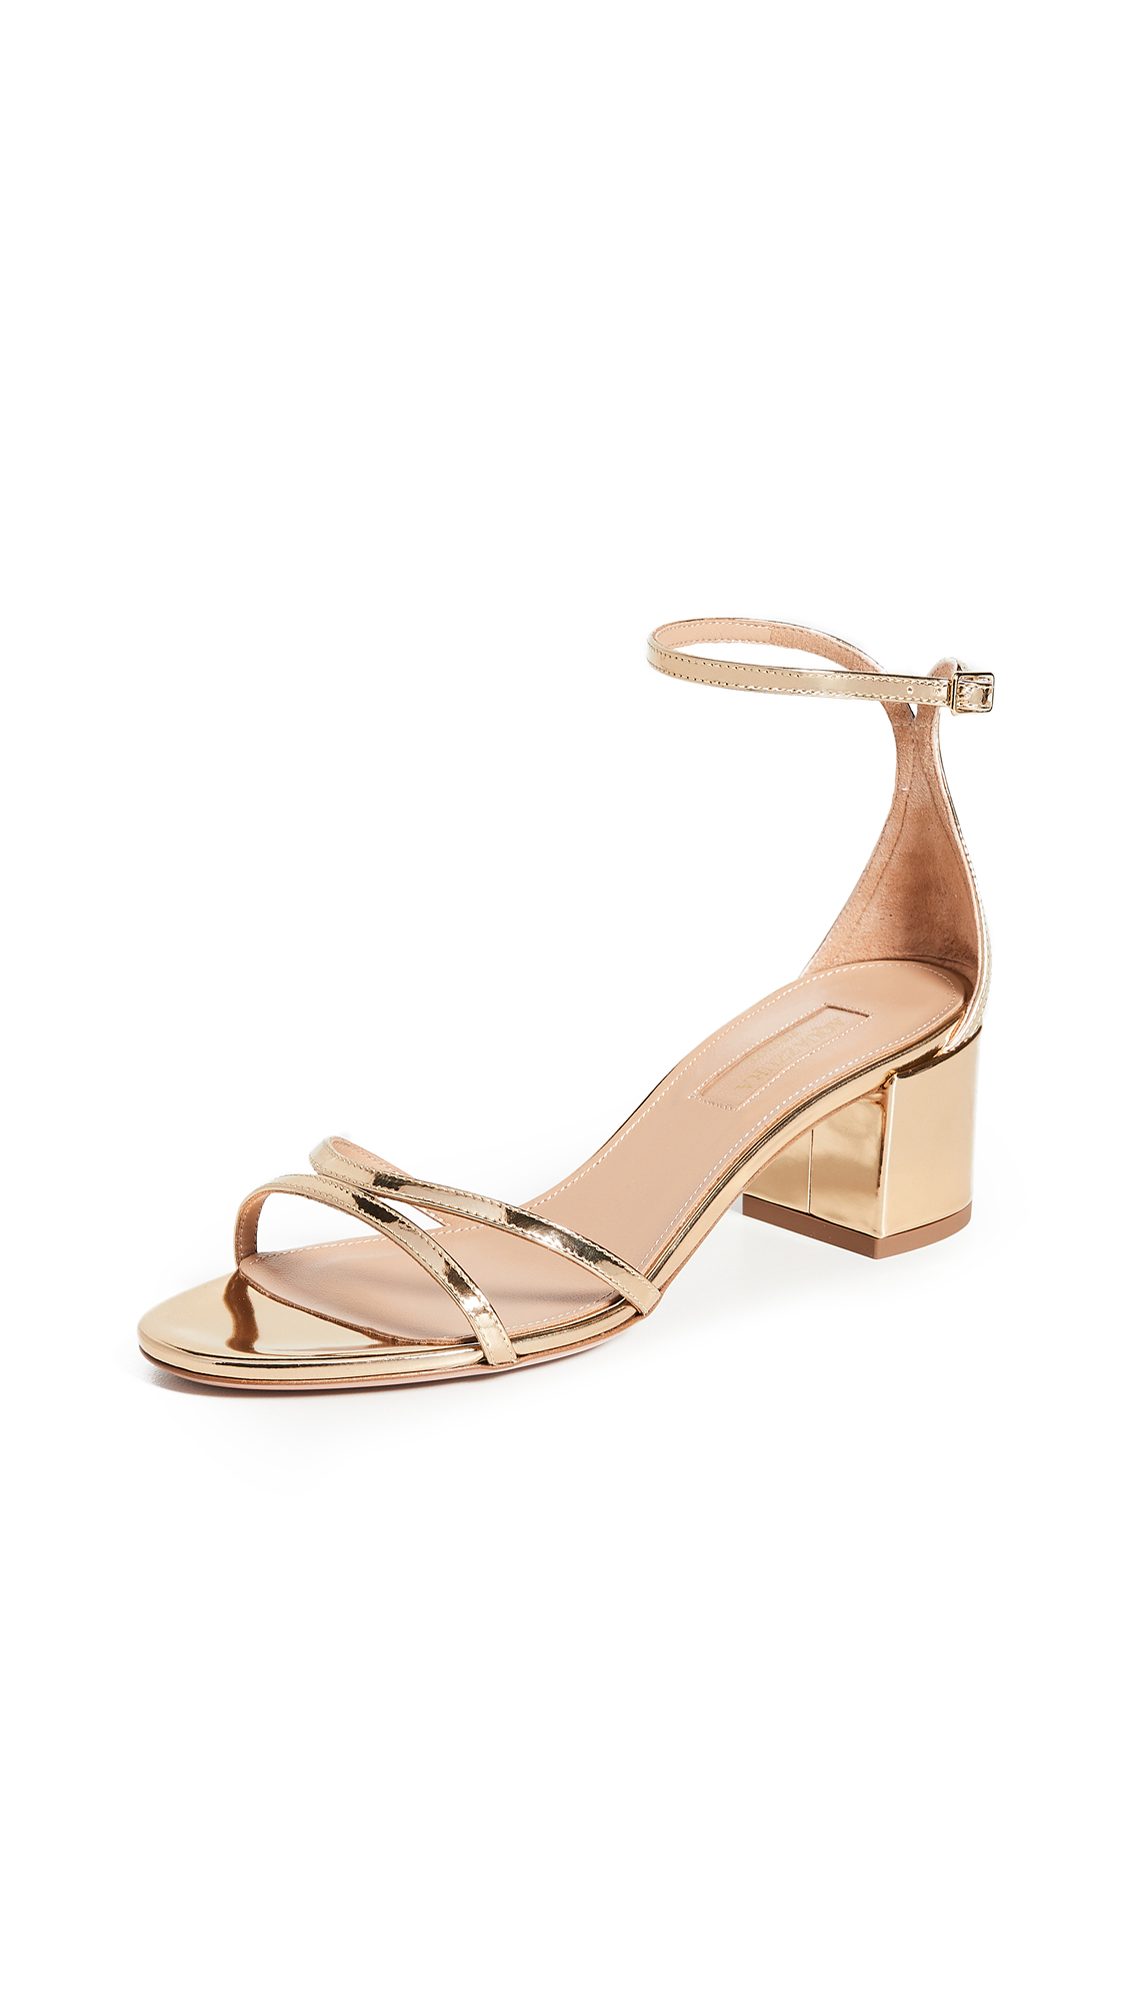 Buy Aquazzura 50mm Purist Sandals online, shop Aquazzura